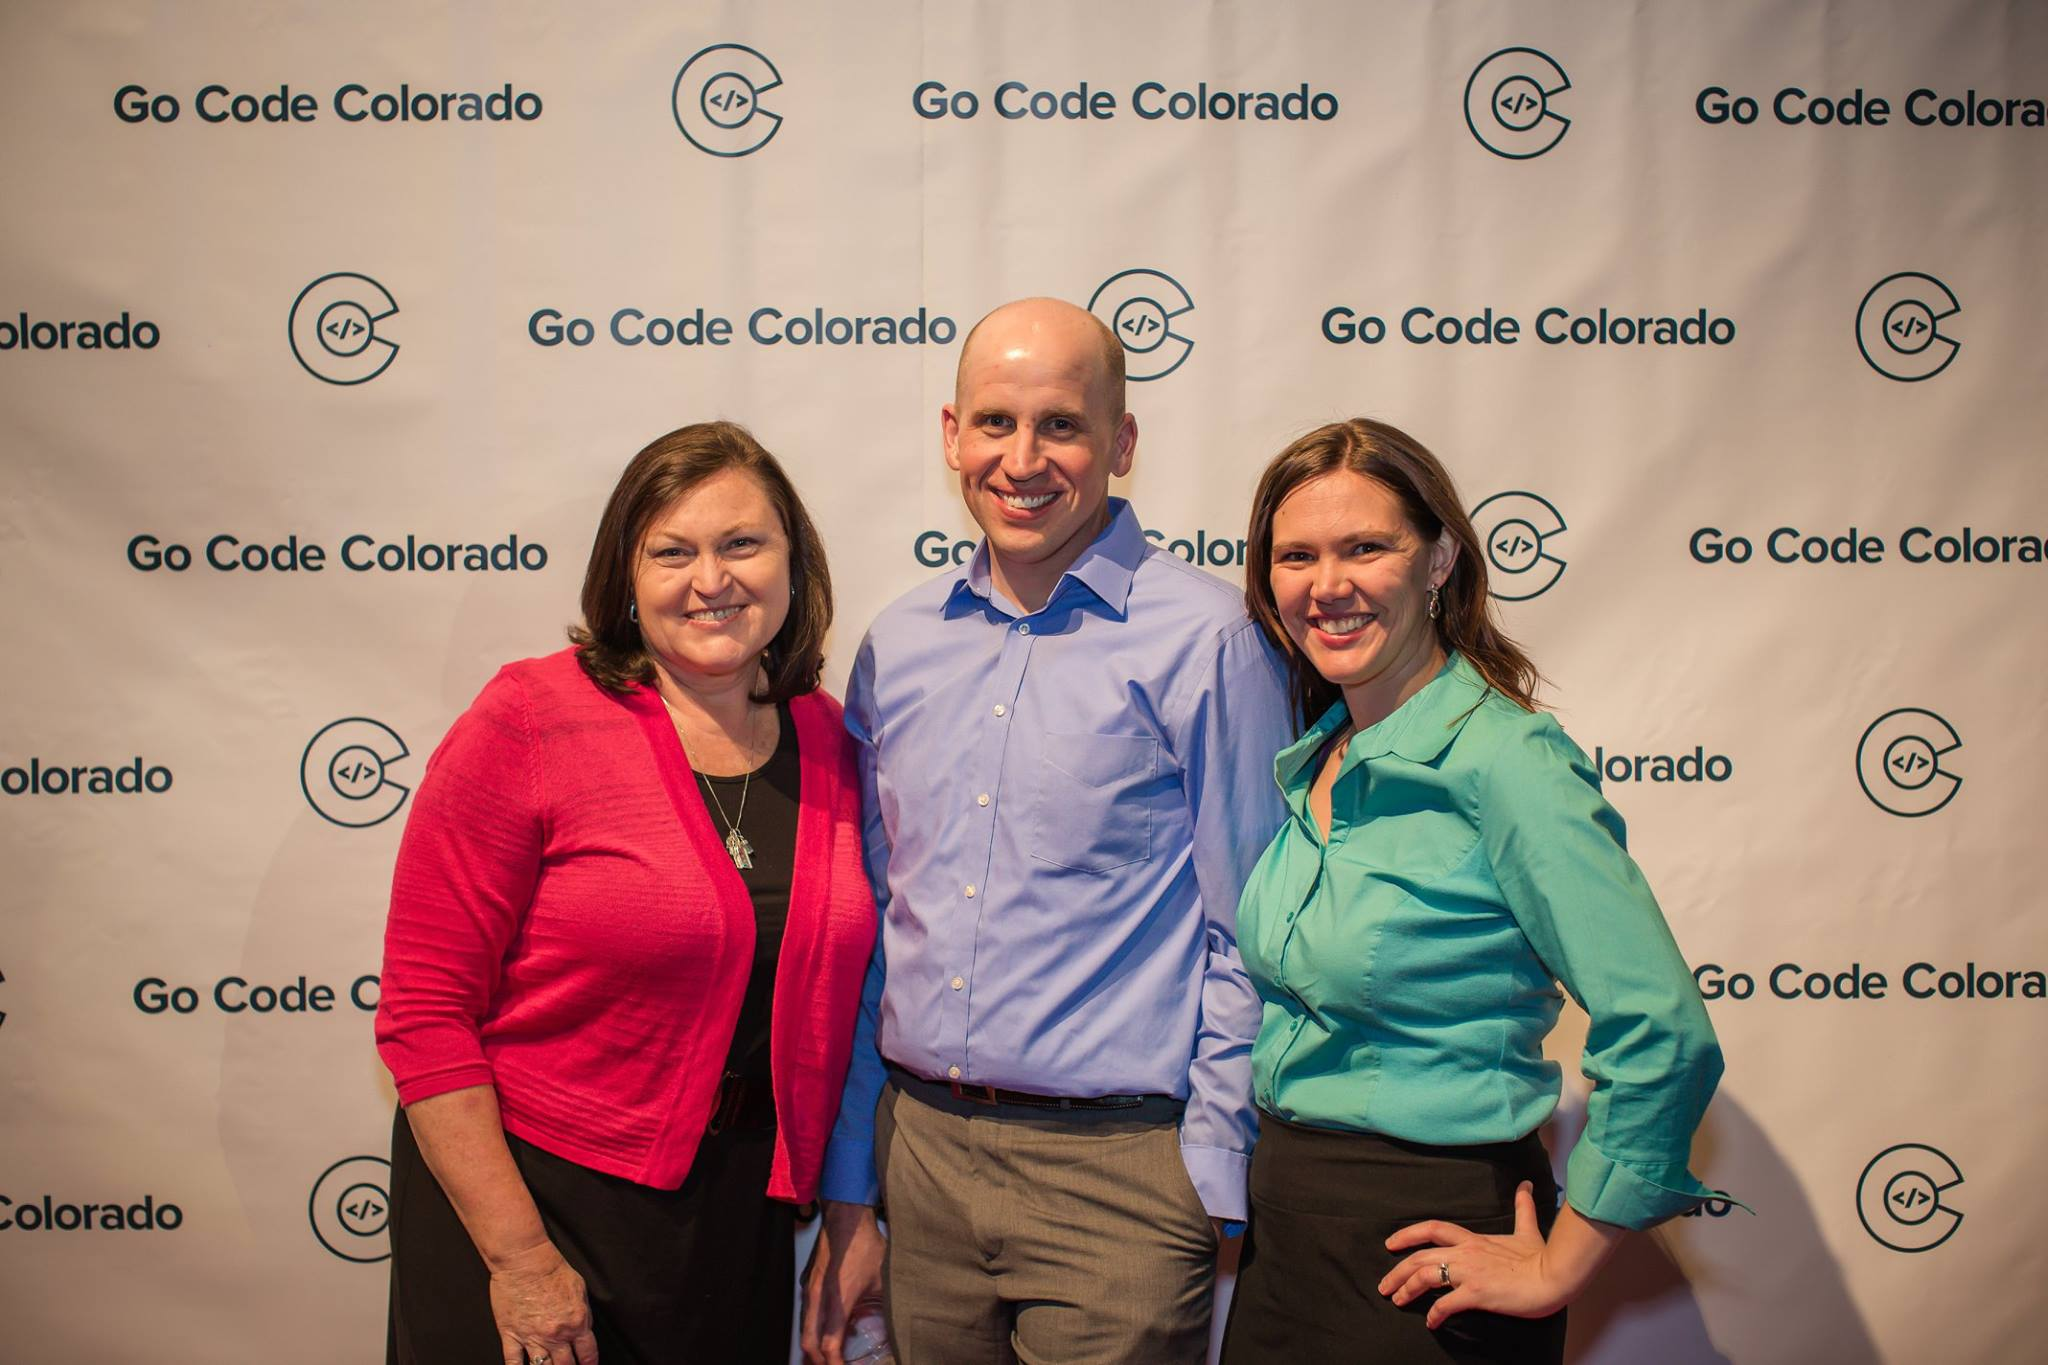 Gretchen, David, and Amber at Go Code Colorado